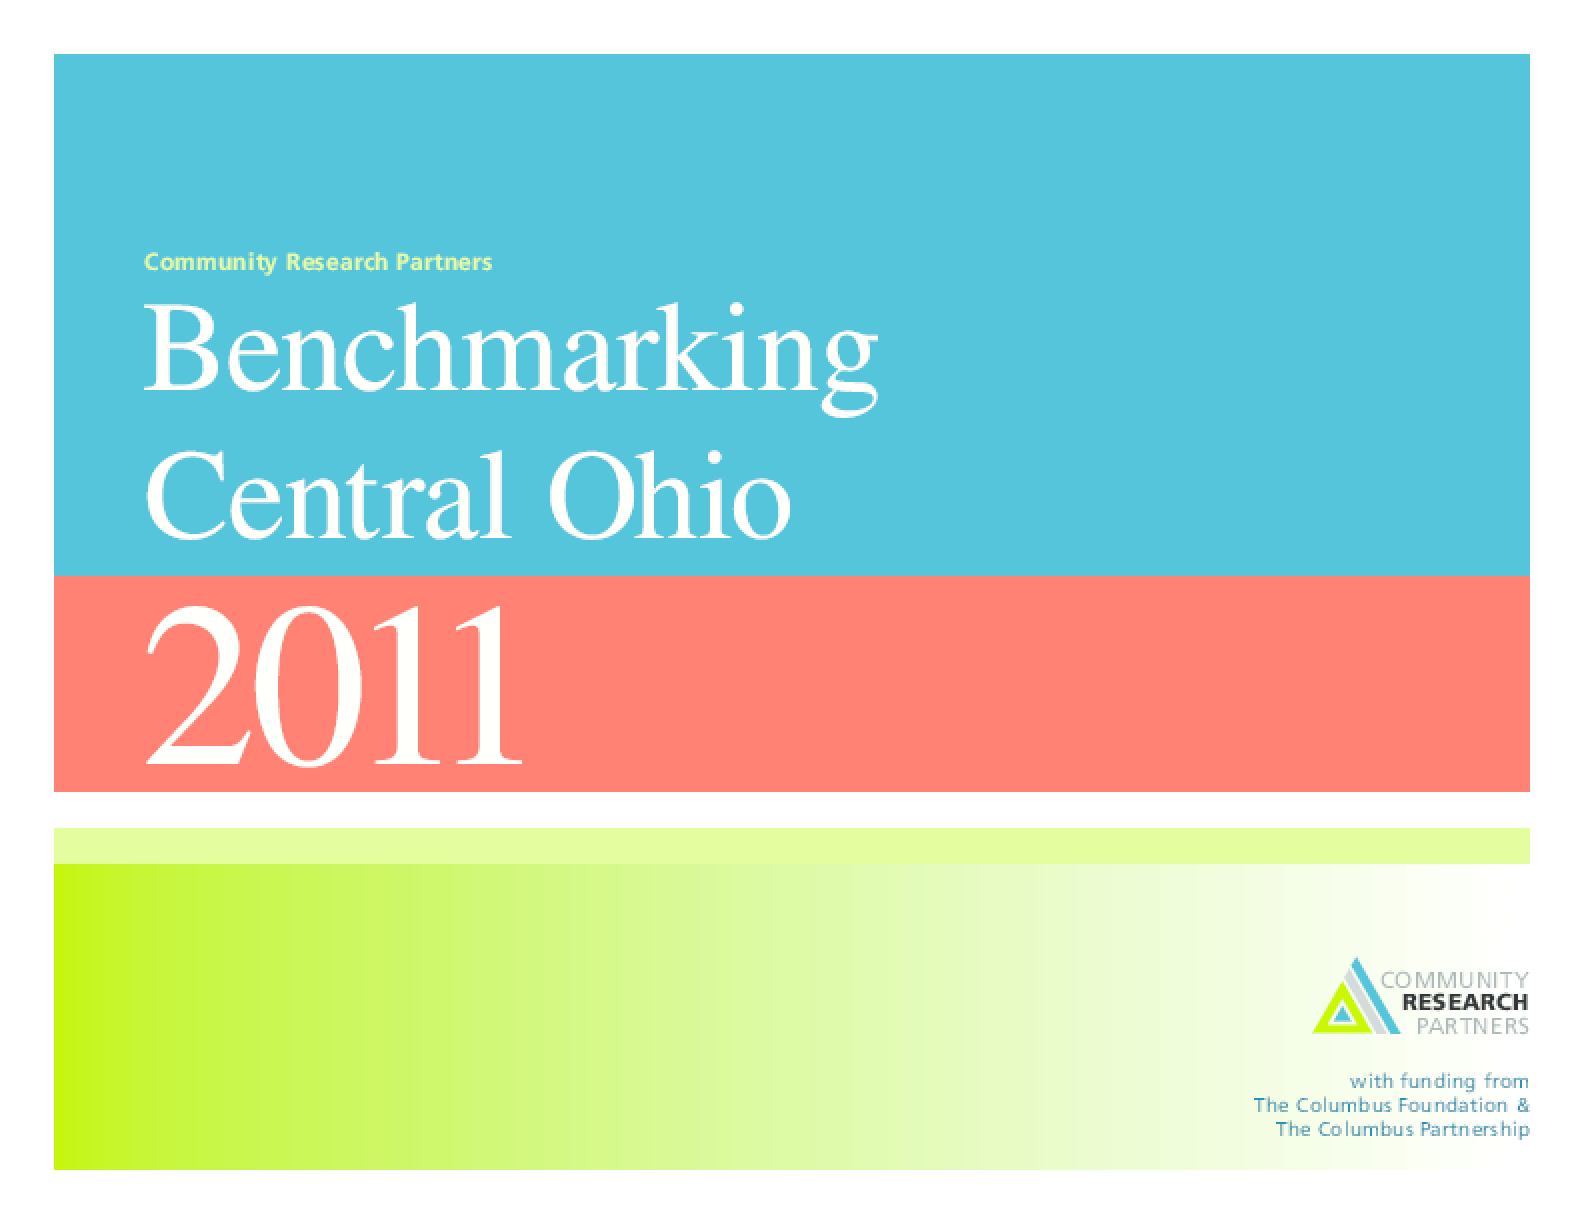 Benchmarking Central Ohio 2011